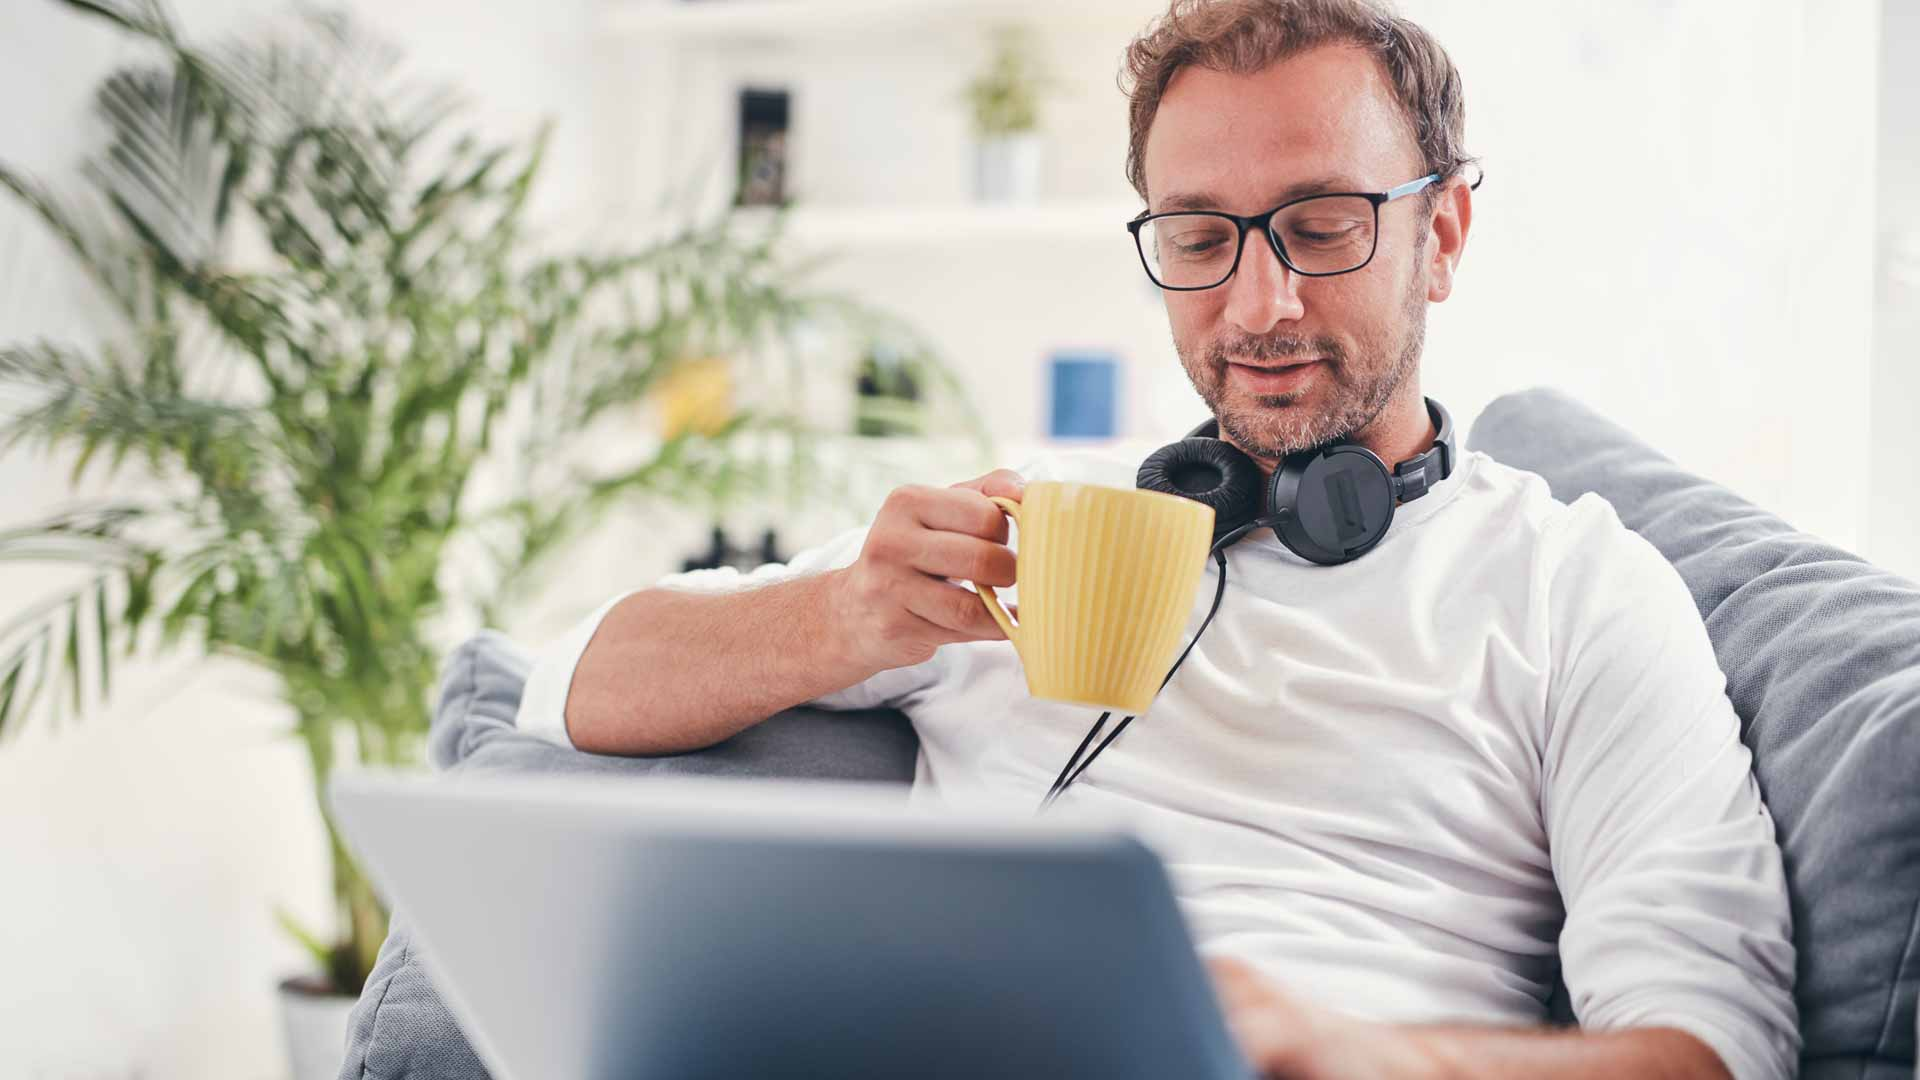 Man sits on a couch with headphones around his necking, sipping coffee while reading.